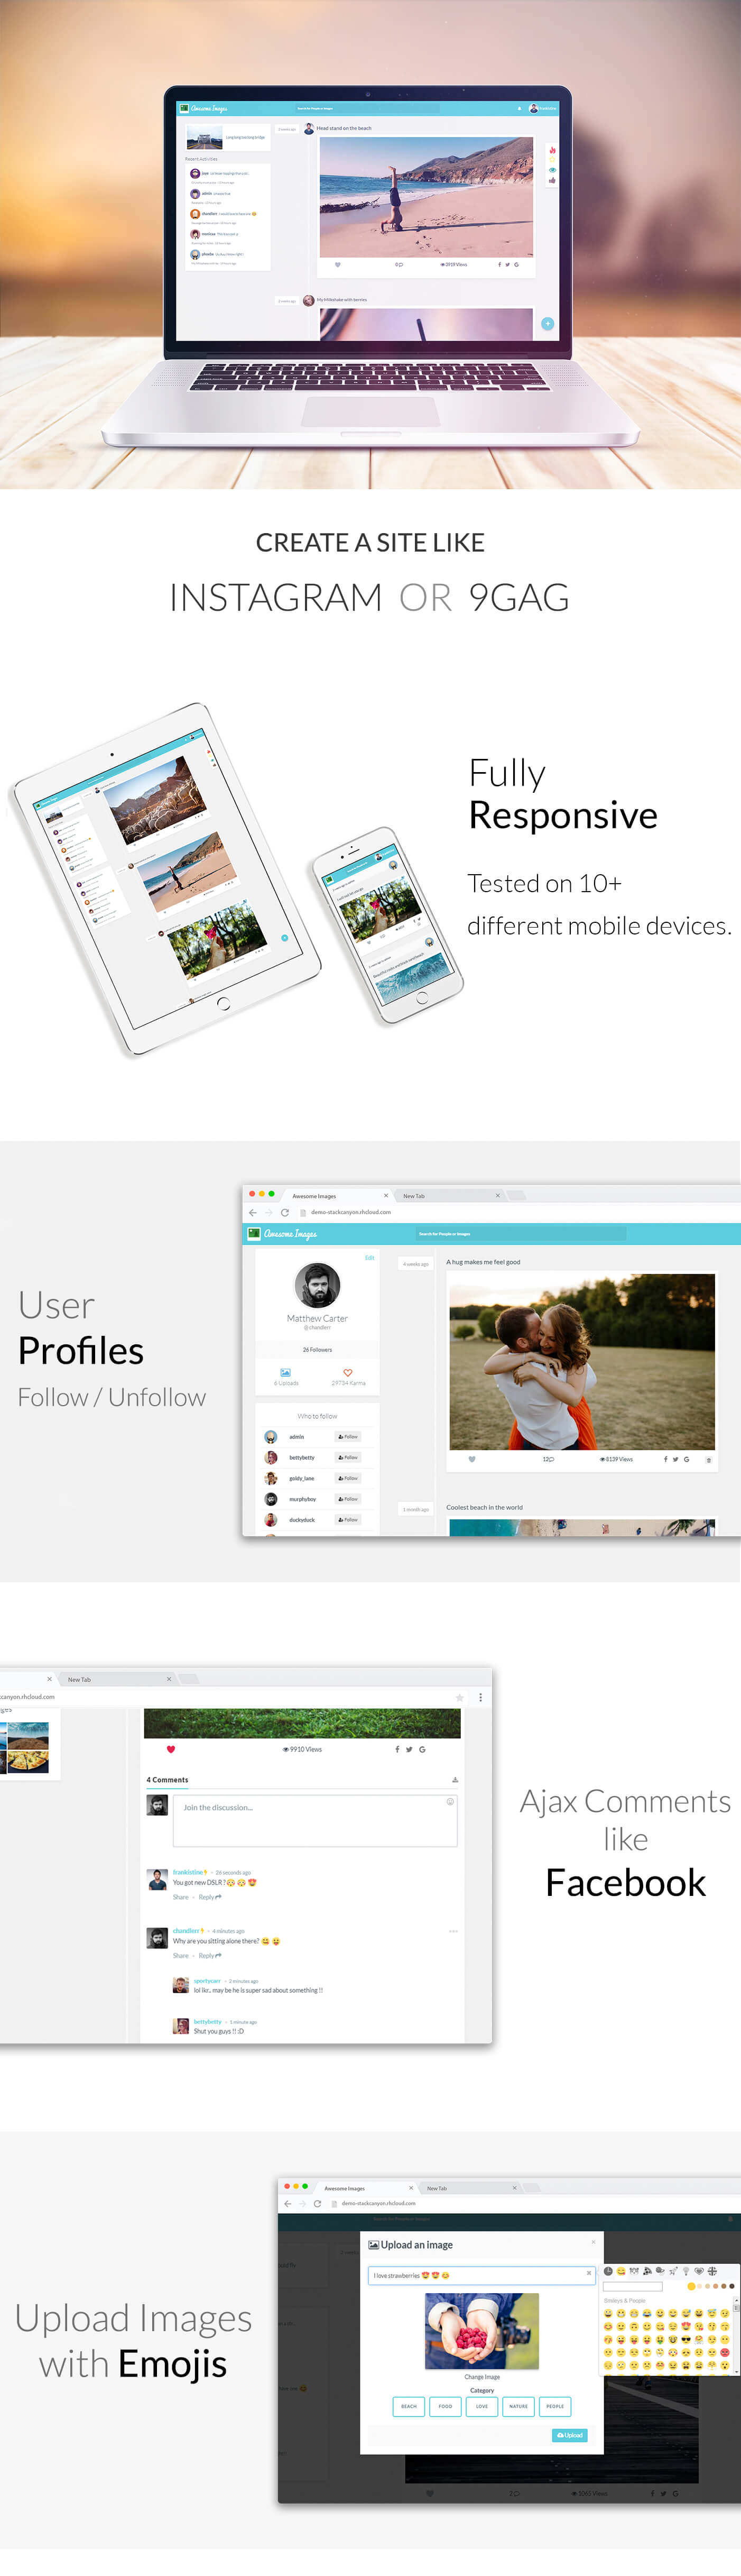 awesome images photo sharing platform supports gifs and social